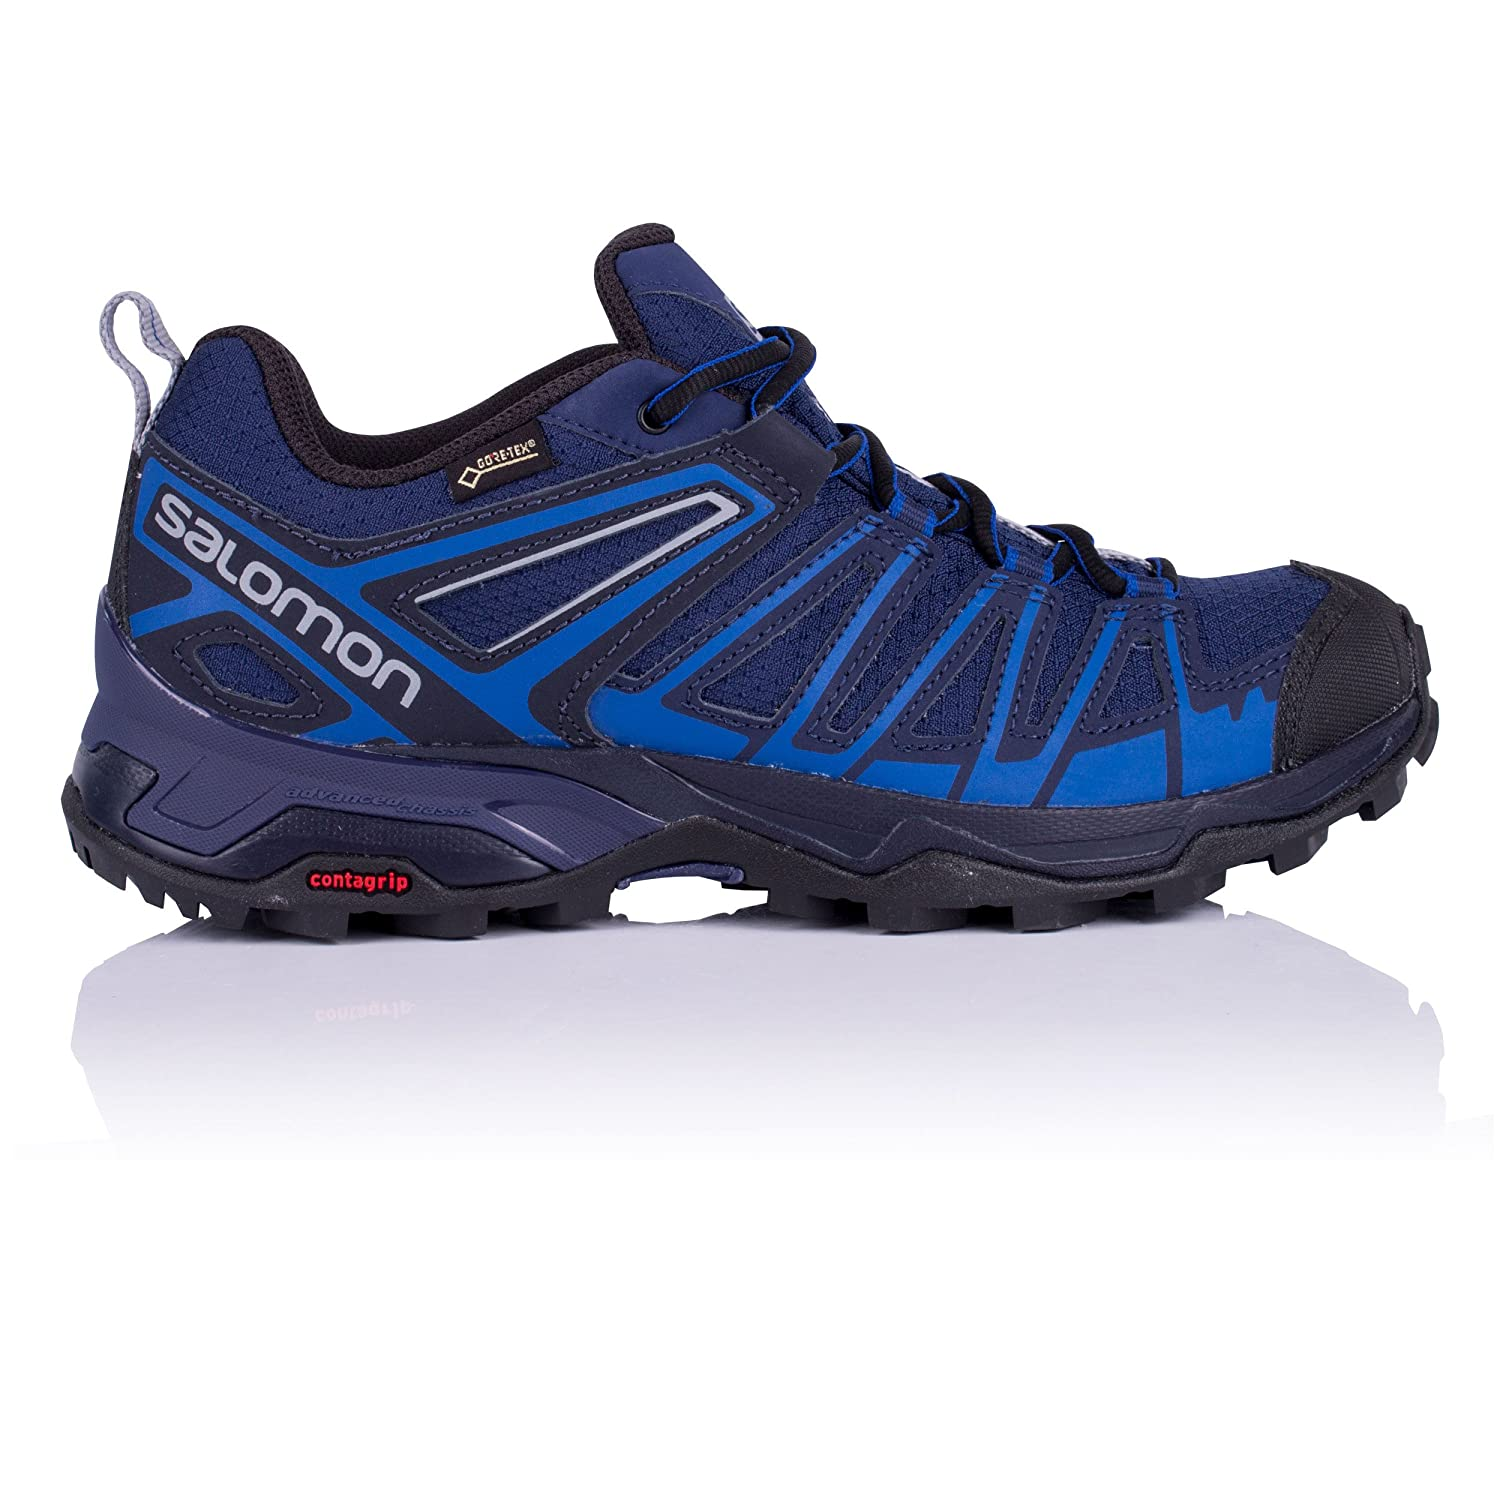 Salomon X Ultra 3 Prime GTX, Zapatillas de Senderismo para Hombre 43 1/3 EU|Azul (Medieval Blue/Nautical Blue/Alloy 000)